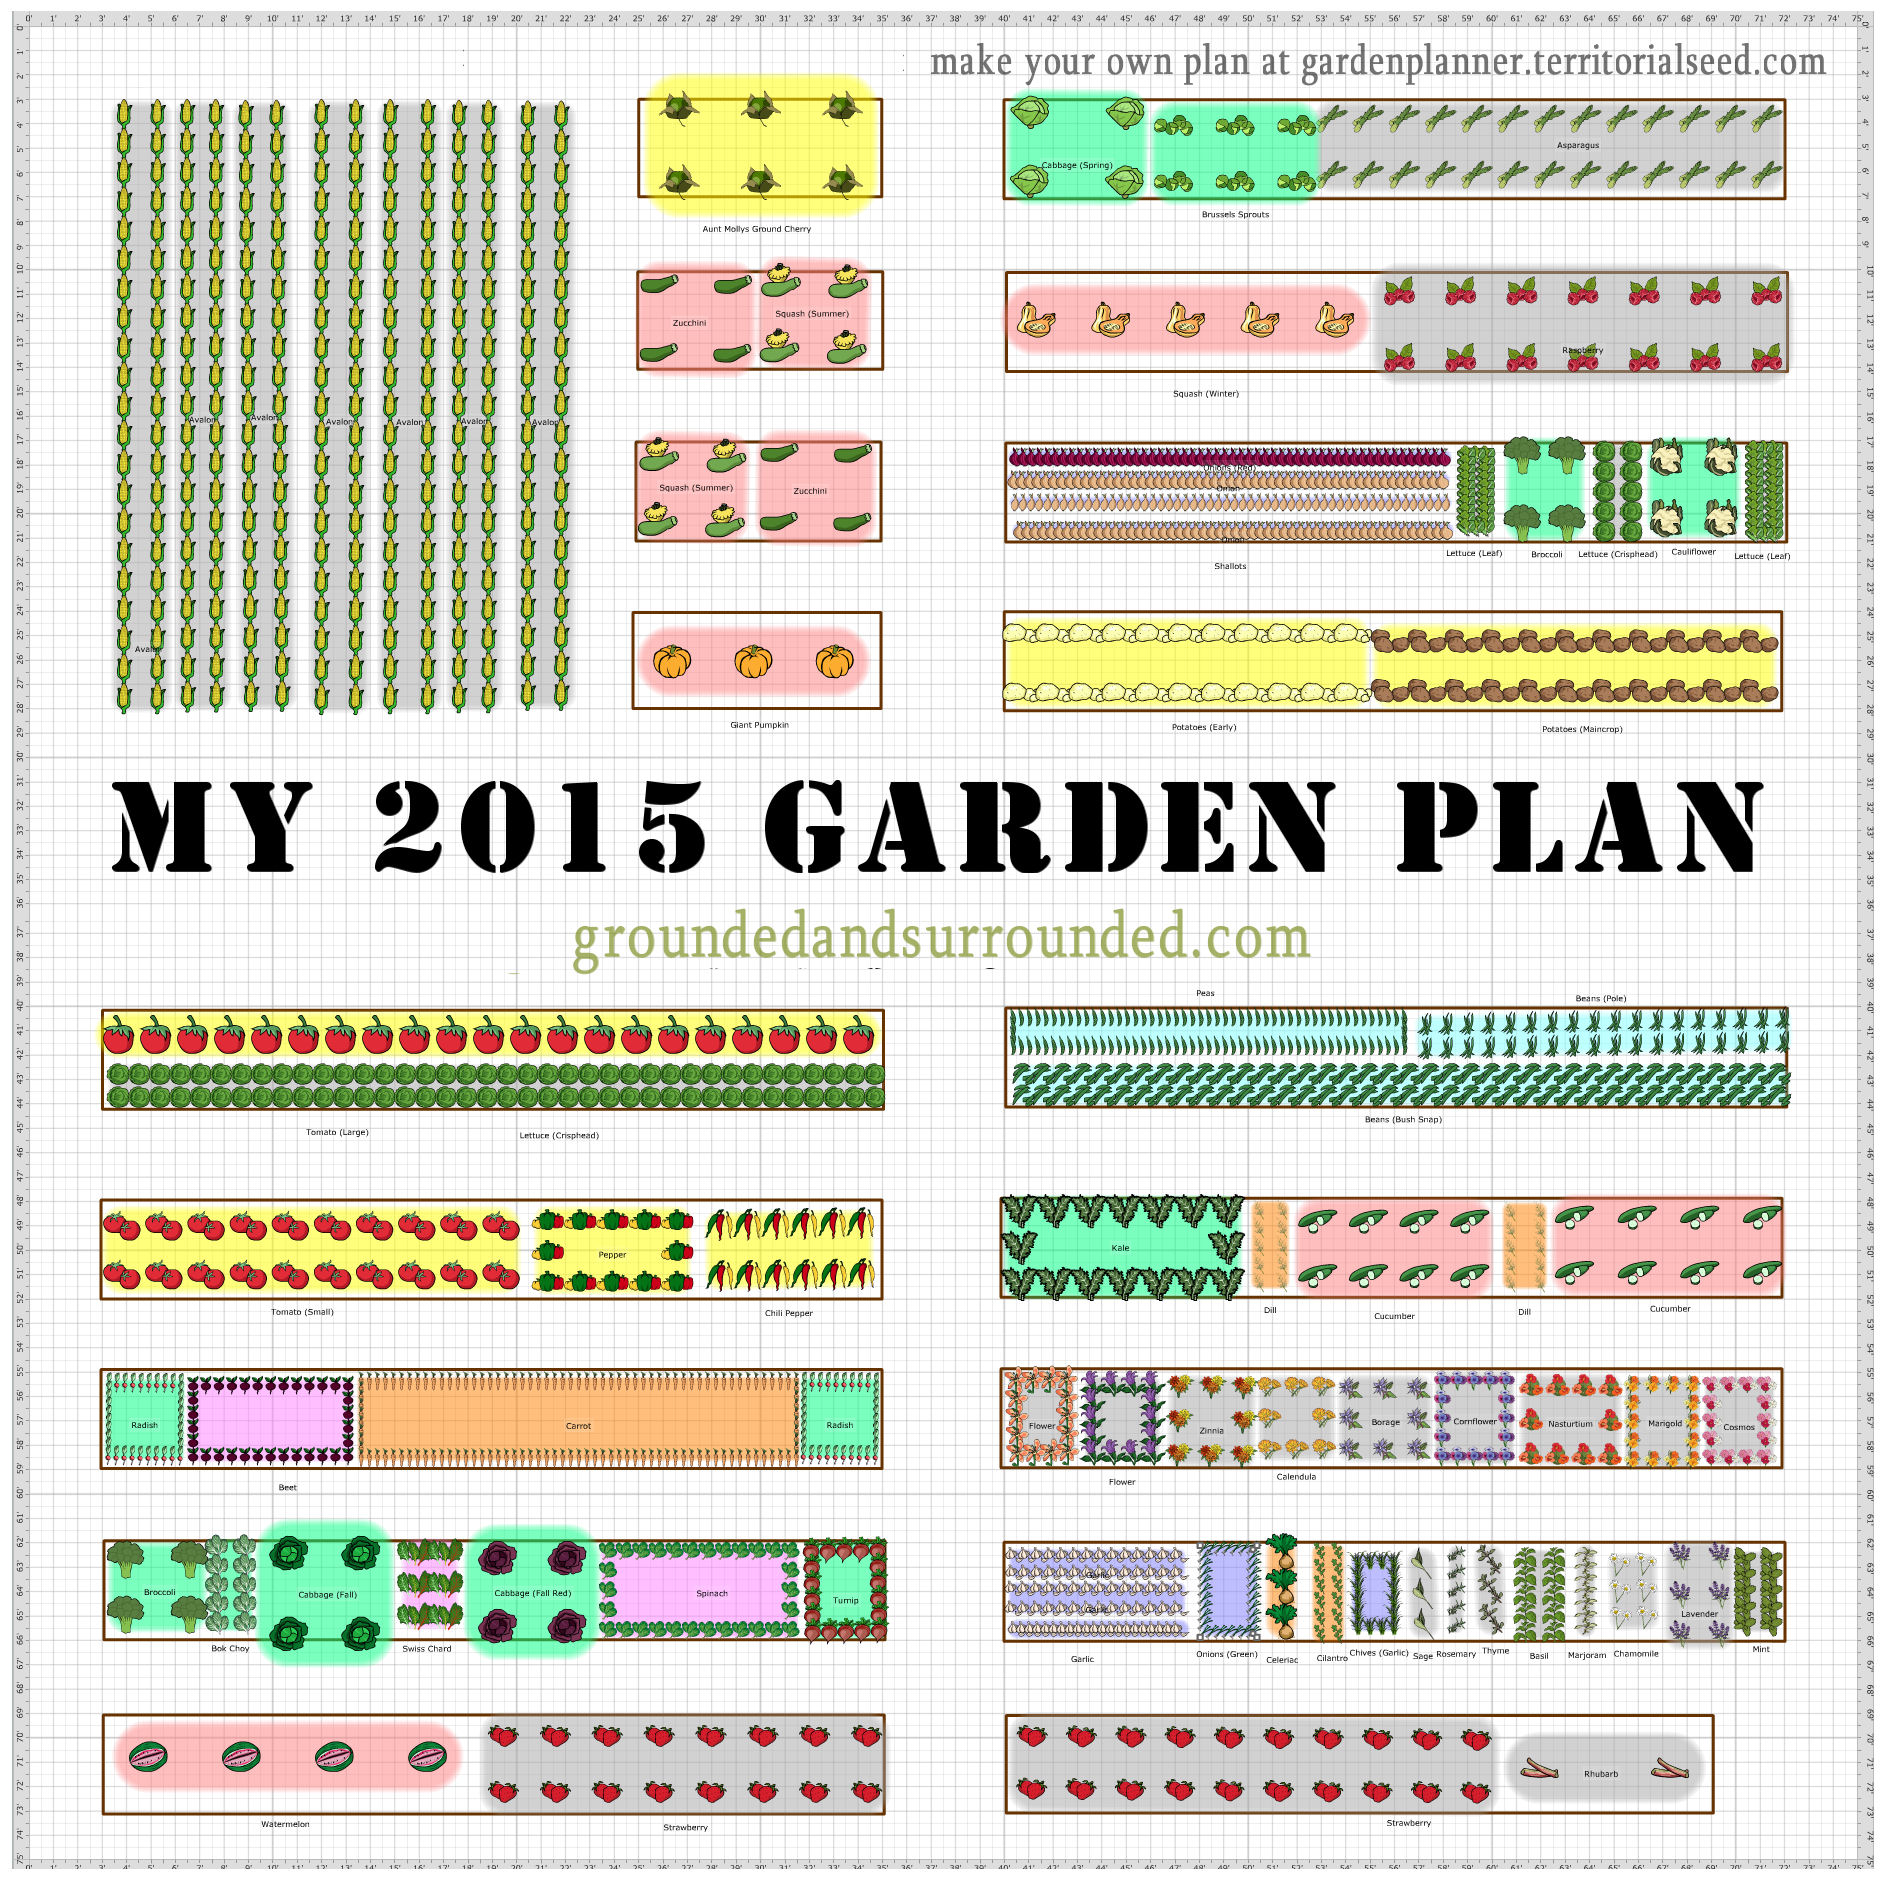 Intensive vegetable garden plans - I Have Often Wished That More Gardeners Shared Their Large Vegetable Garden Plans Online This